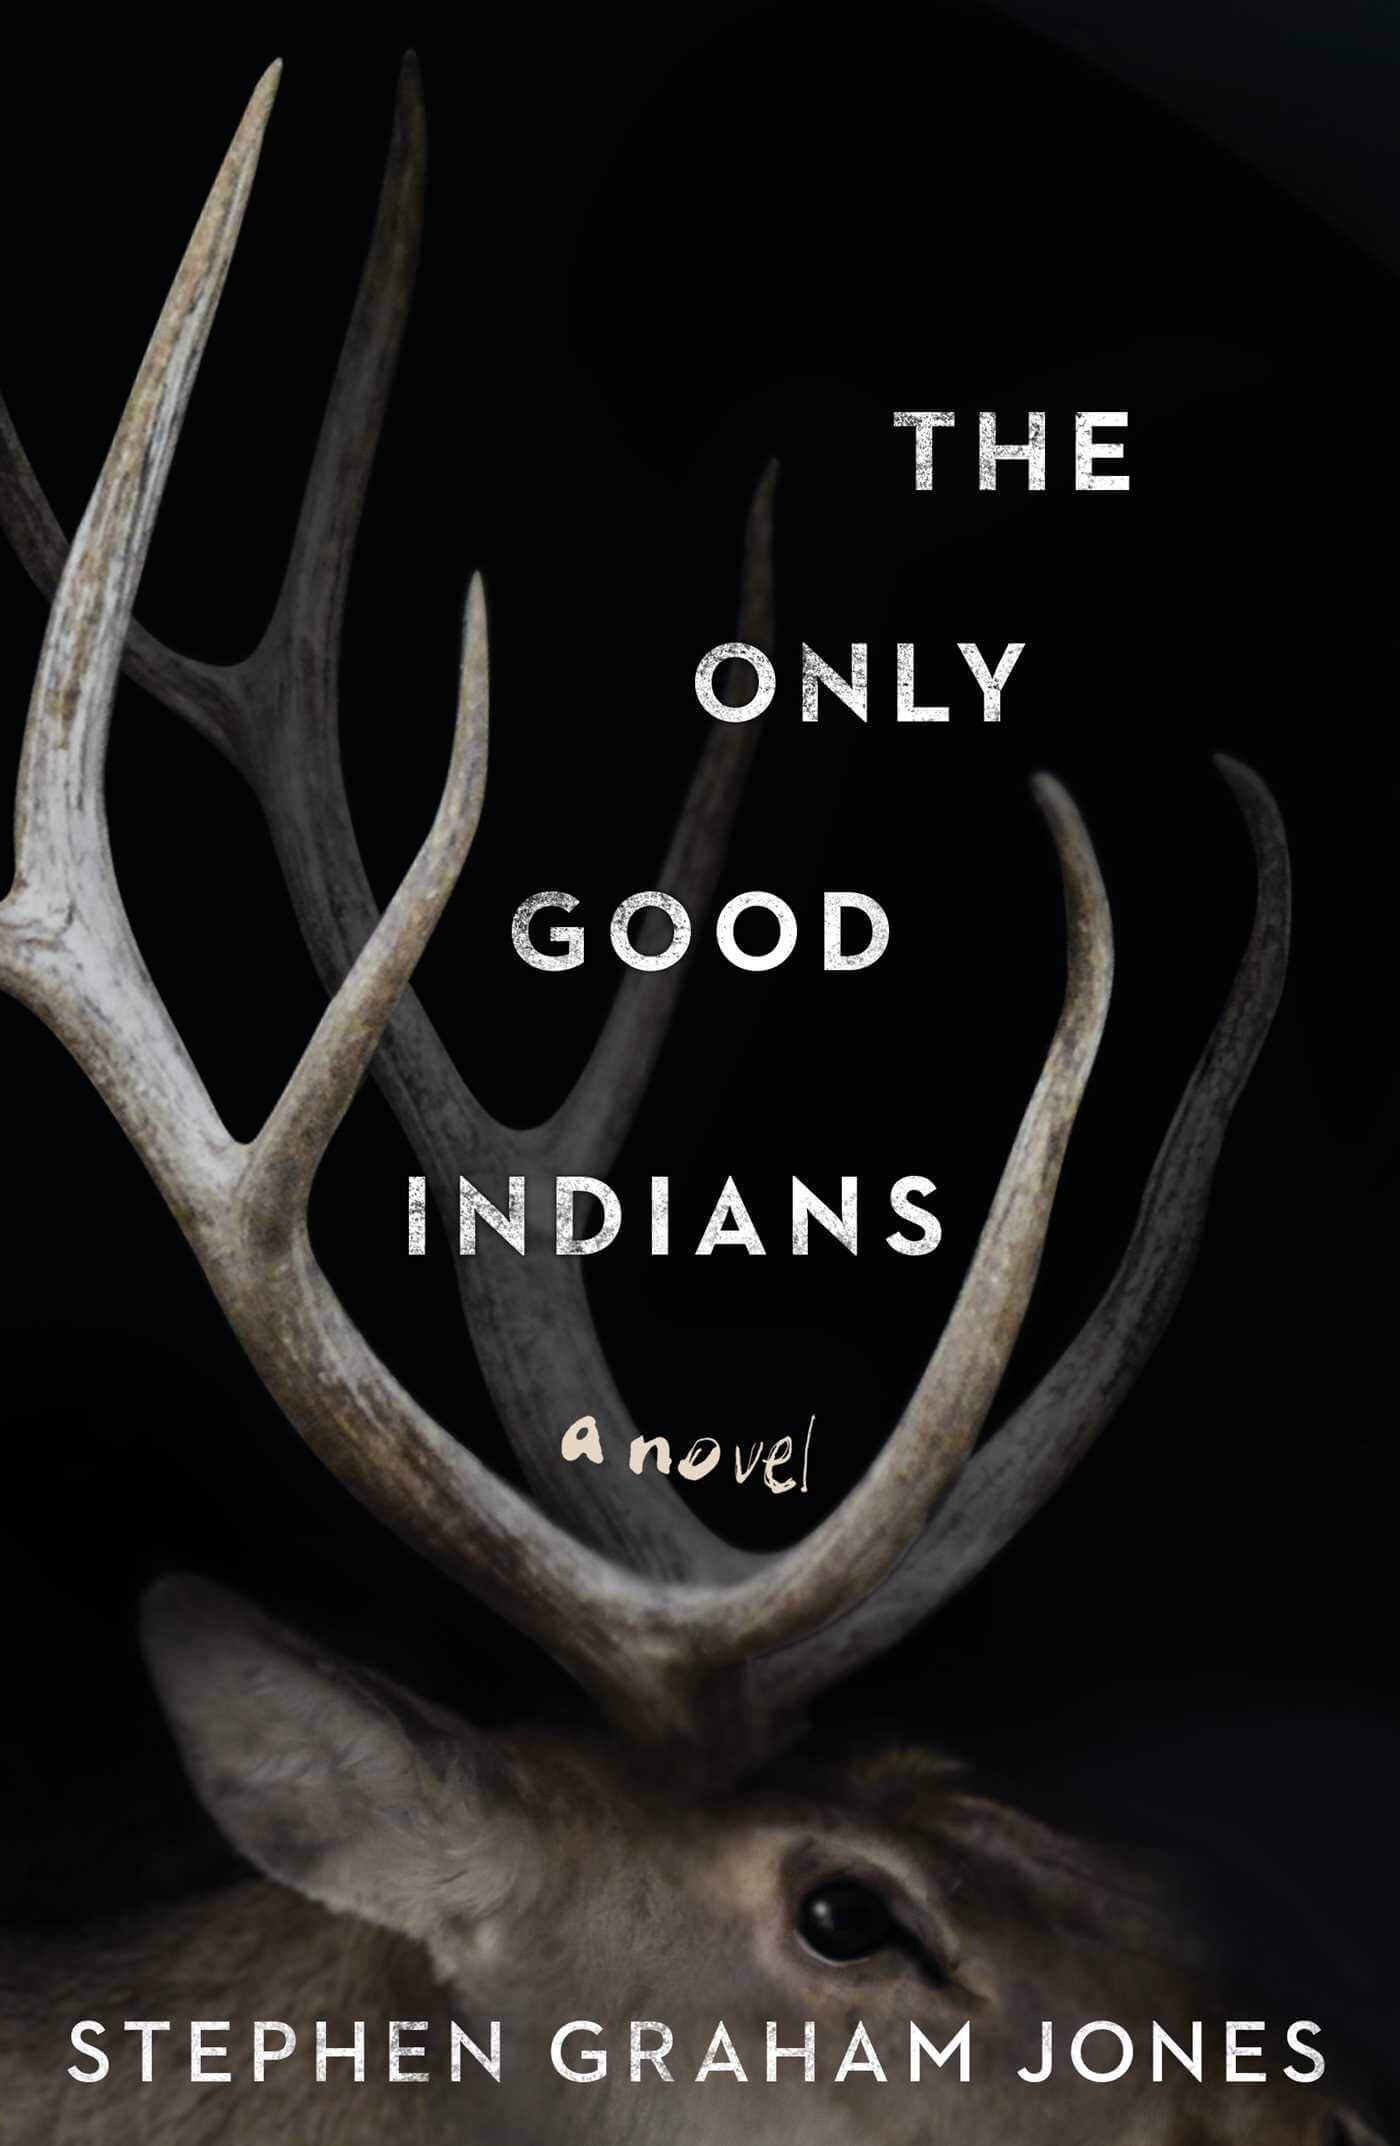 The Only Good Indians book cover image